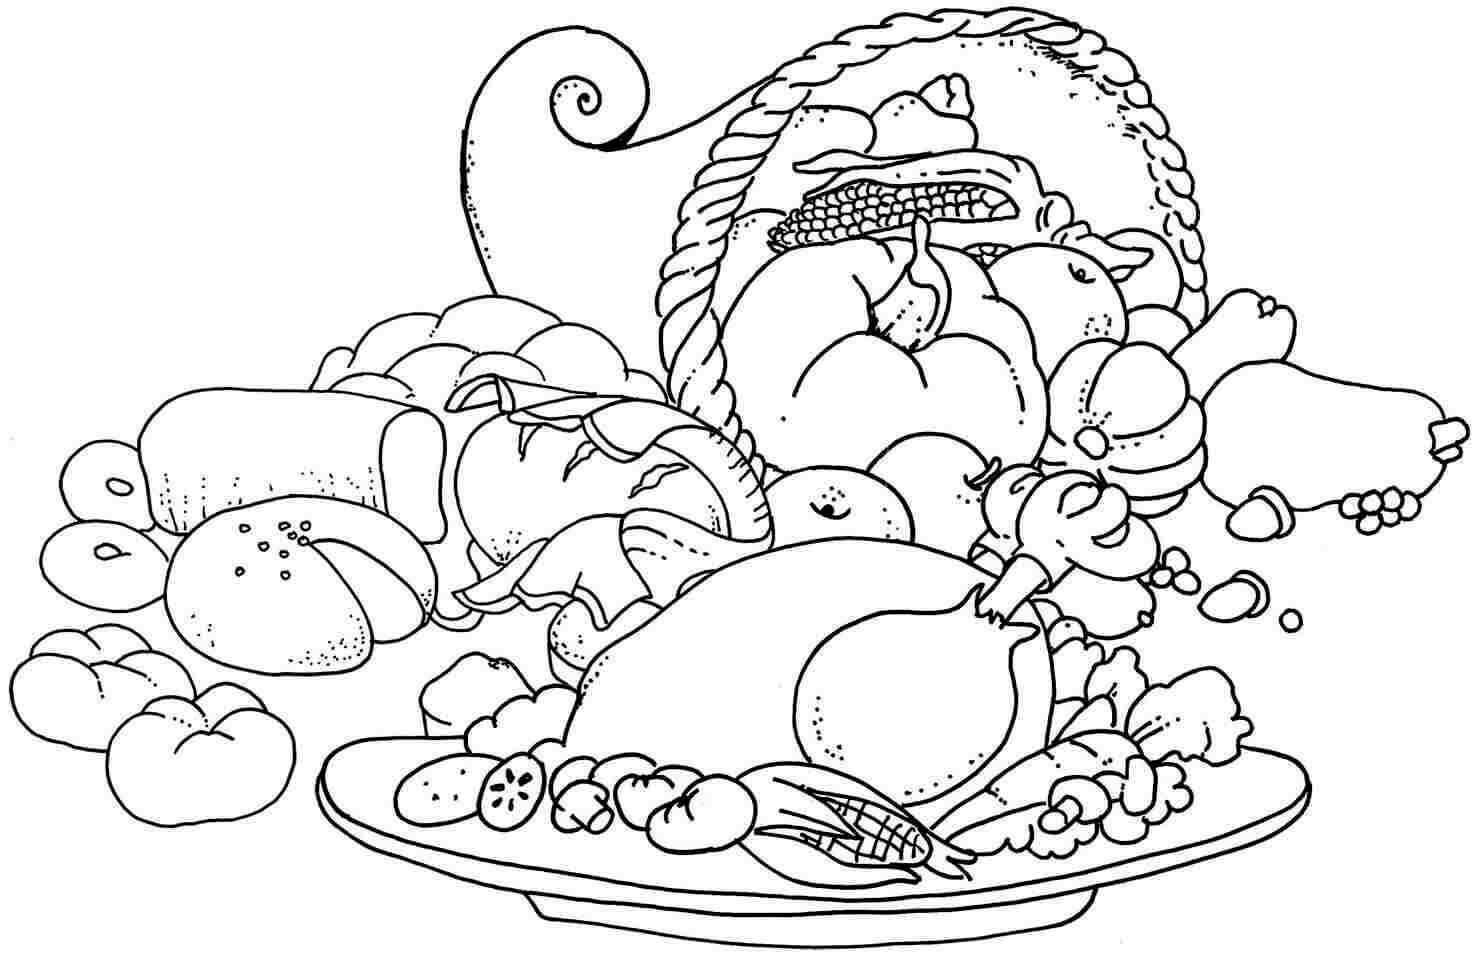 October Coloring Pages 20 Free Printable October Coloring Pages - Free Printable October Coloring Sheets